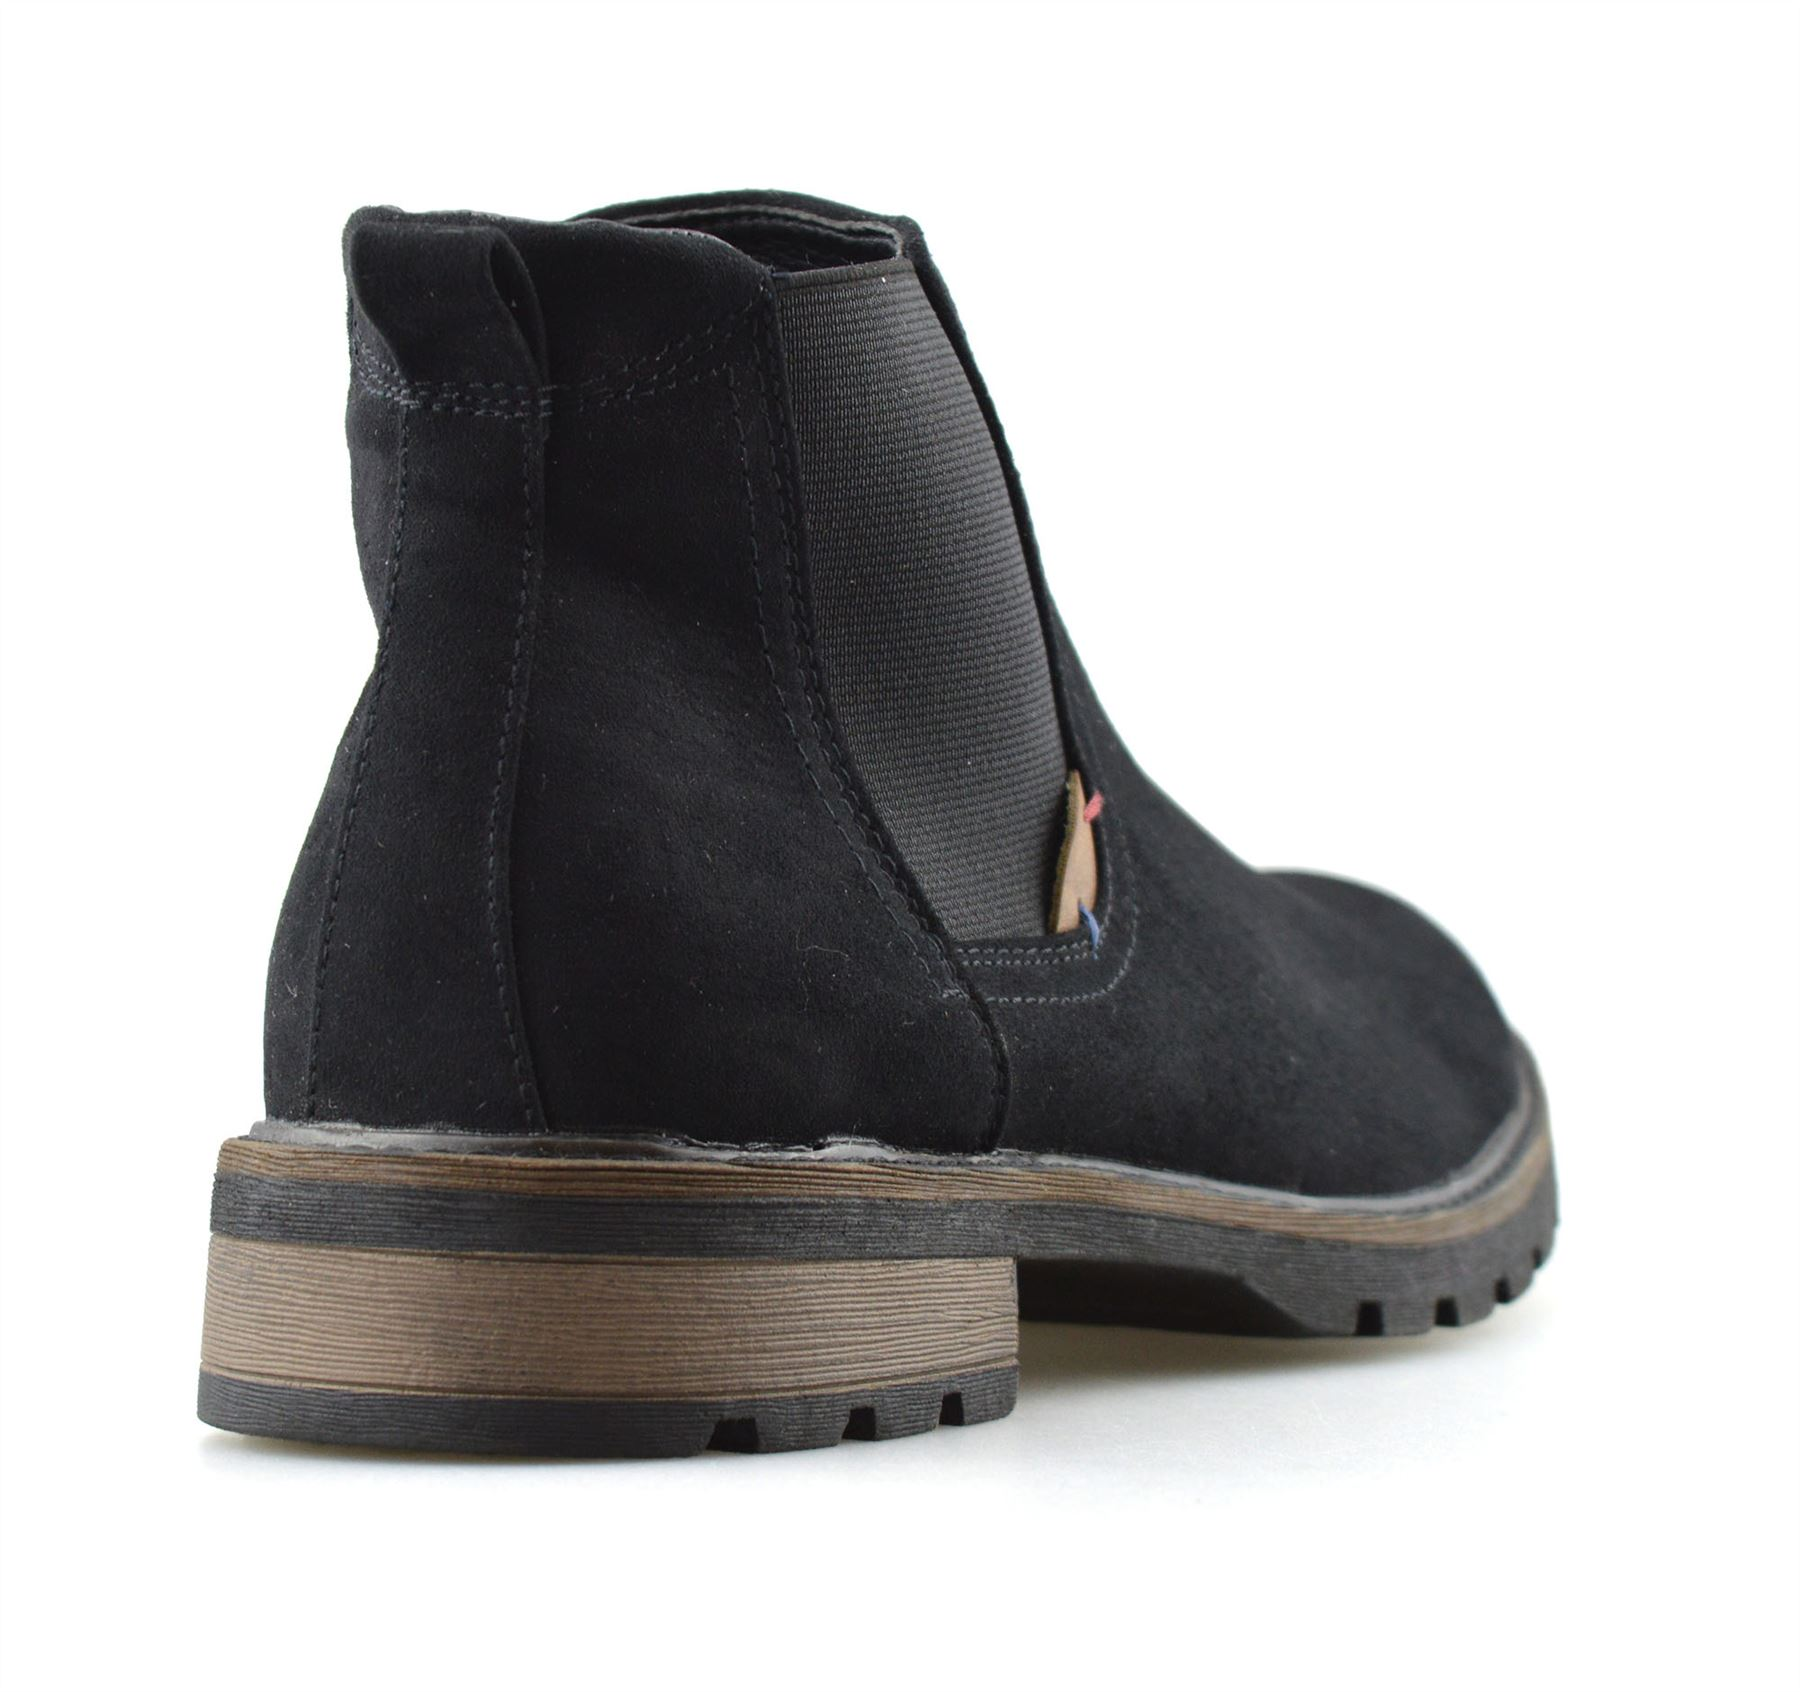 Mens-New-Smart-Formal-Chelsea-Dealer-Casual-Slip-On-Work-Ankle-Boots-Shoes-Size thumbnail 9